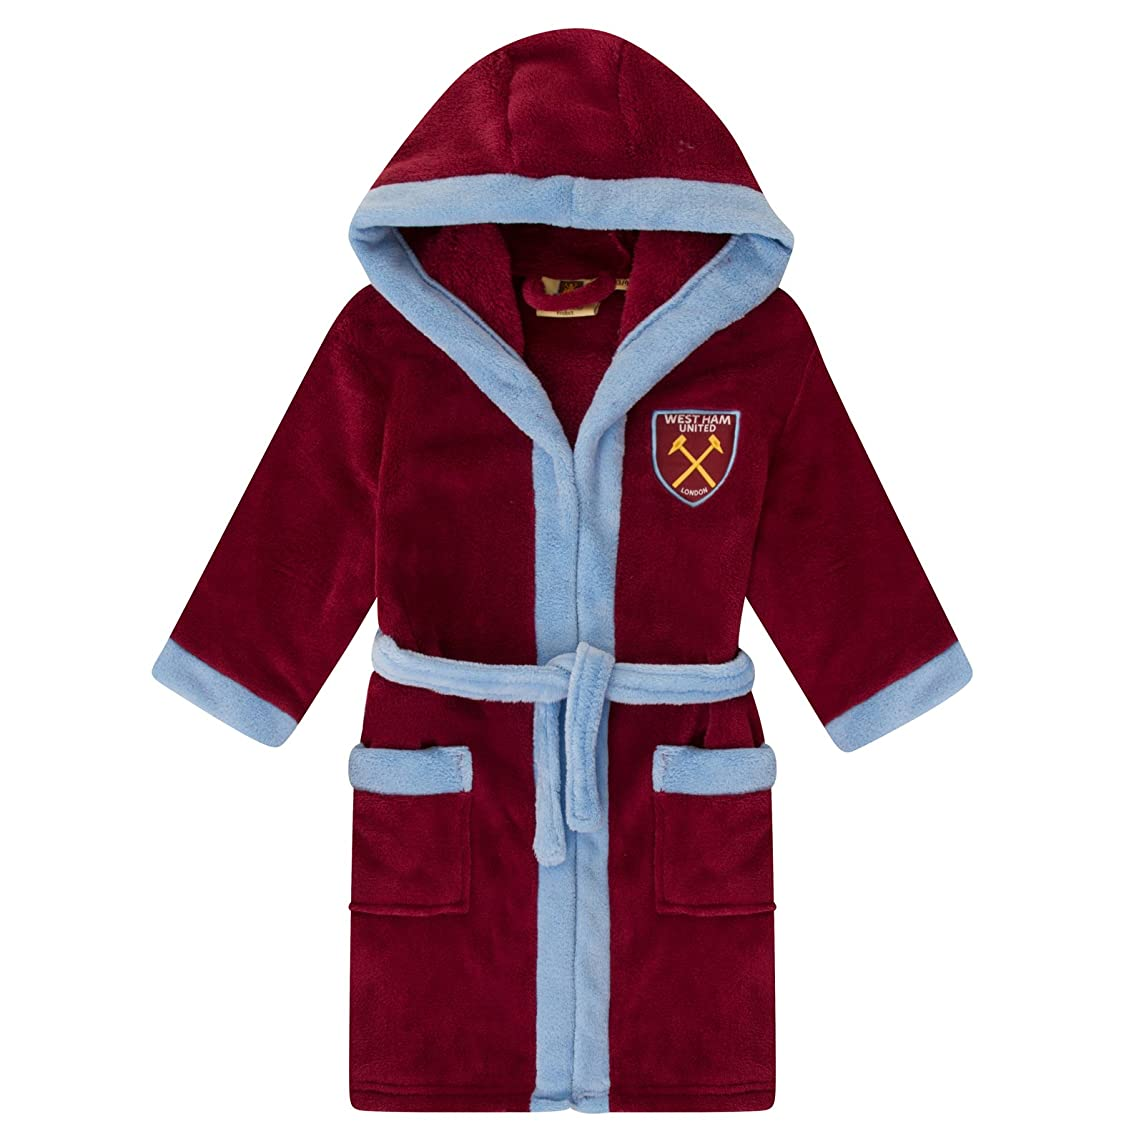 West Ham United FC Official Soccer Gift Boys Hooded Fleece Dressing Gown Robe